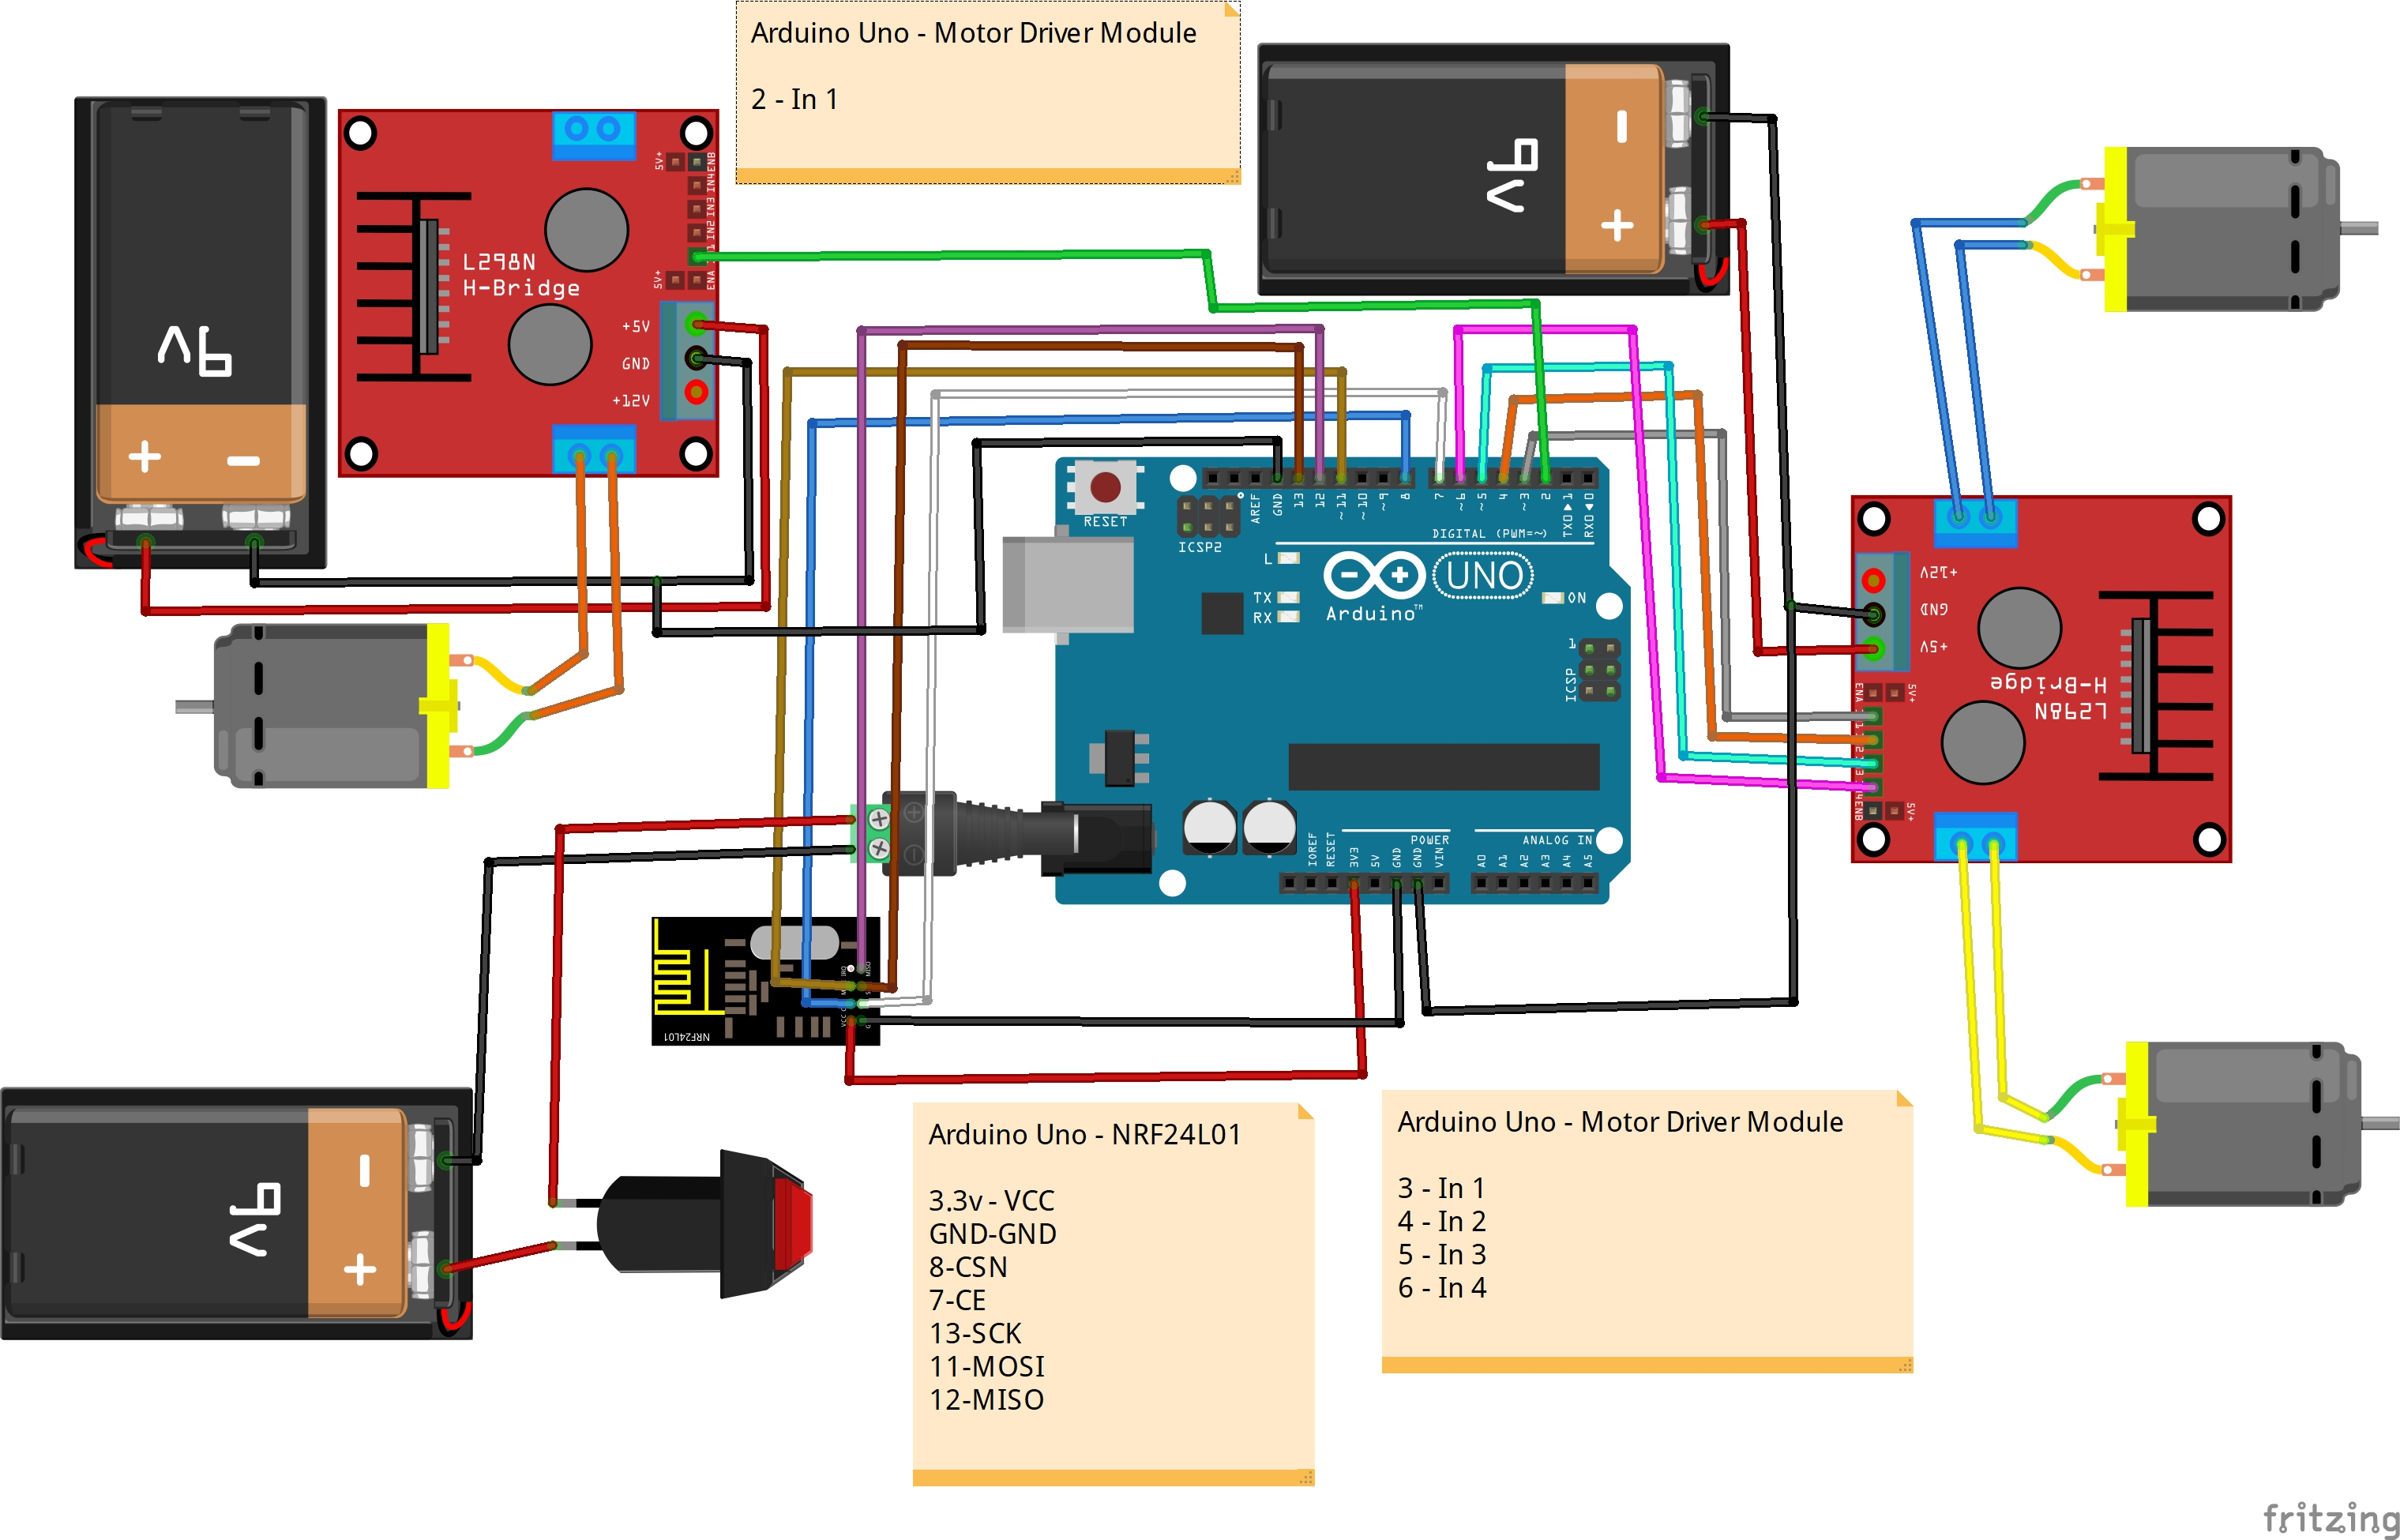 [SODI_2457]   How to Build a Battlebot With Arduino and Cardboard - Hackster.io | Battlebot Schematics |  | Hackster.io